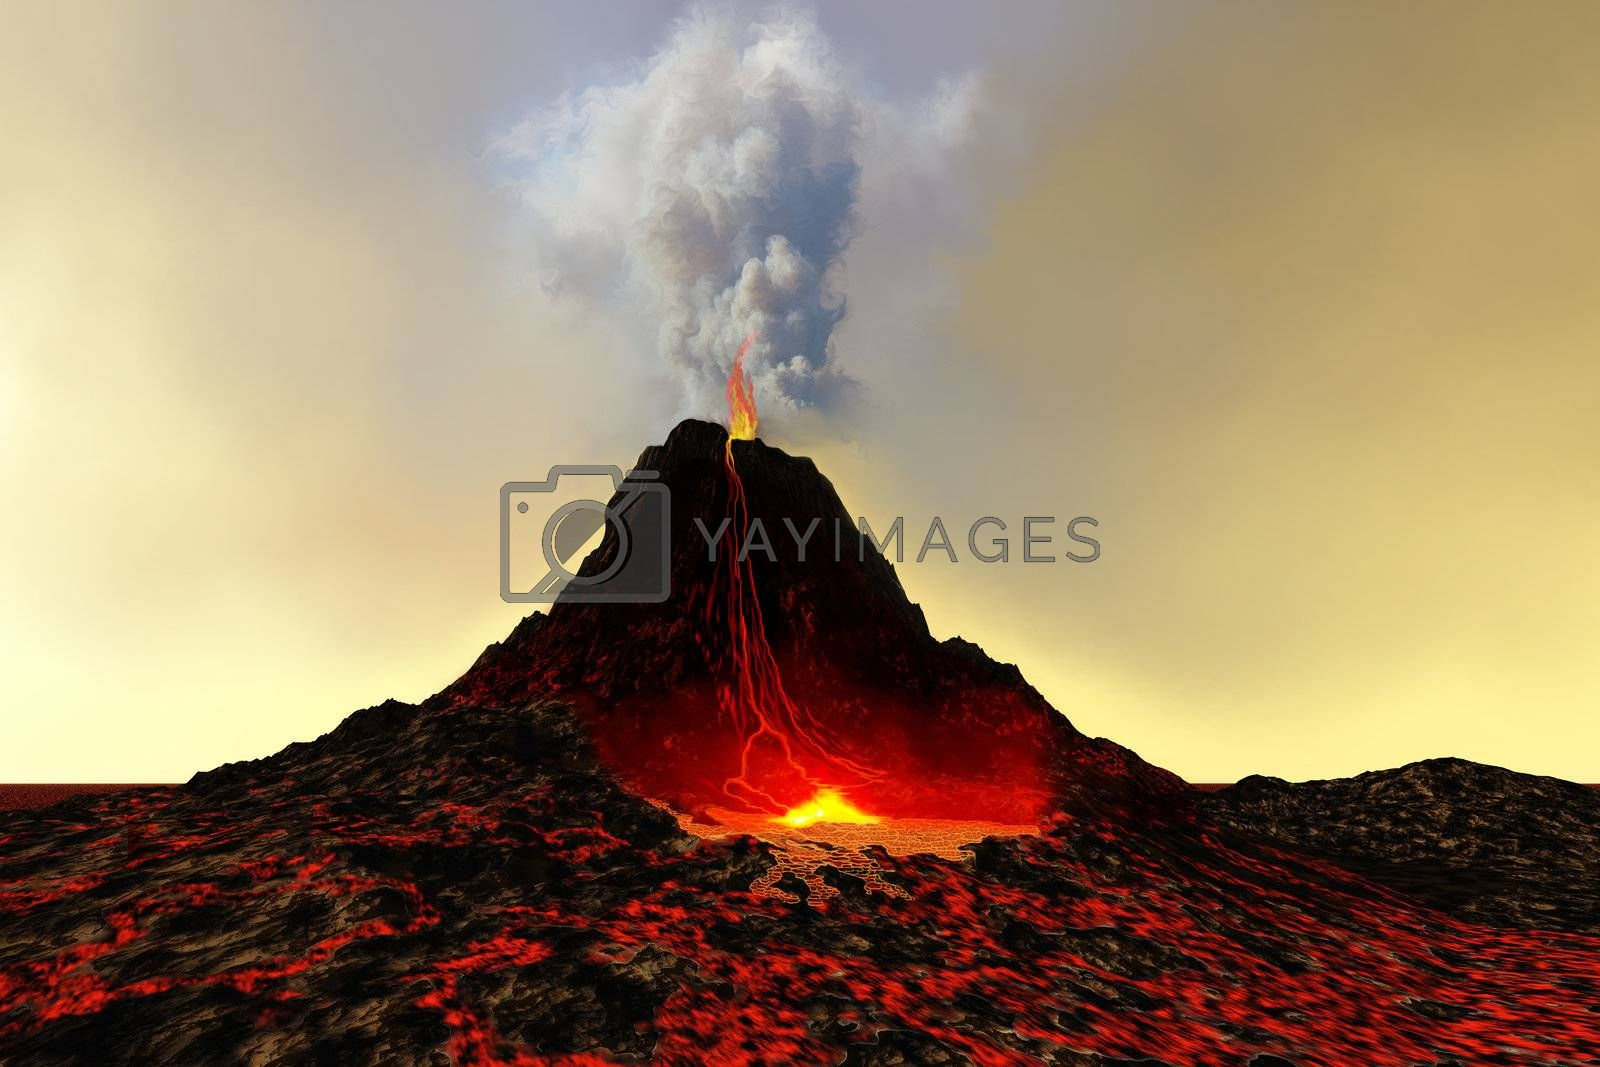 An active volcano spews out hot red lava and smoke.